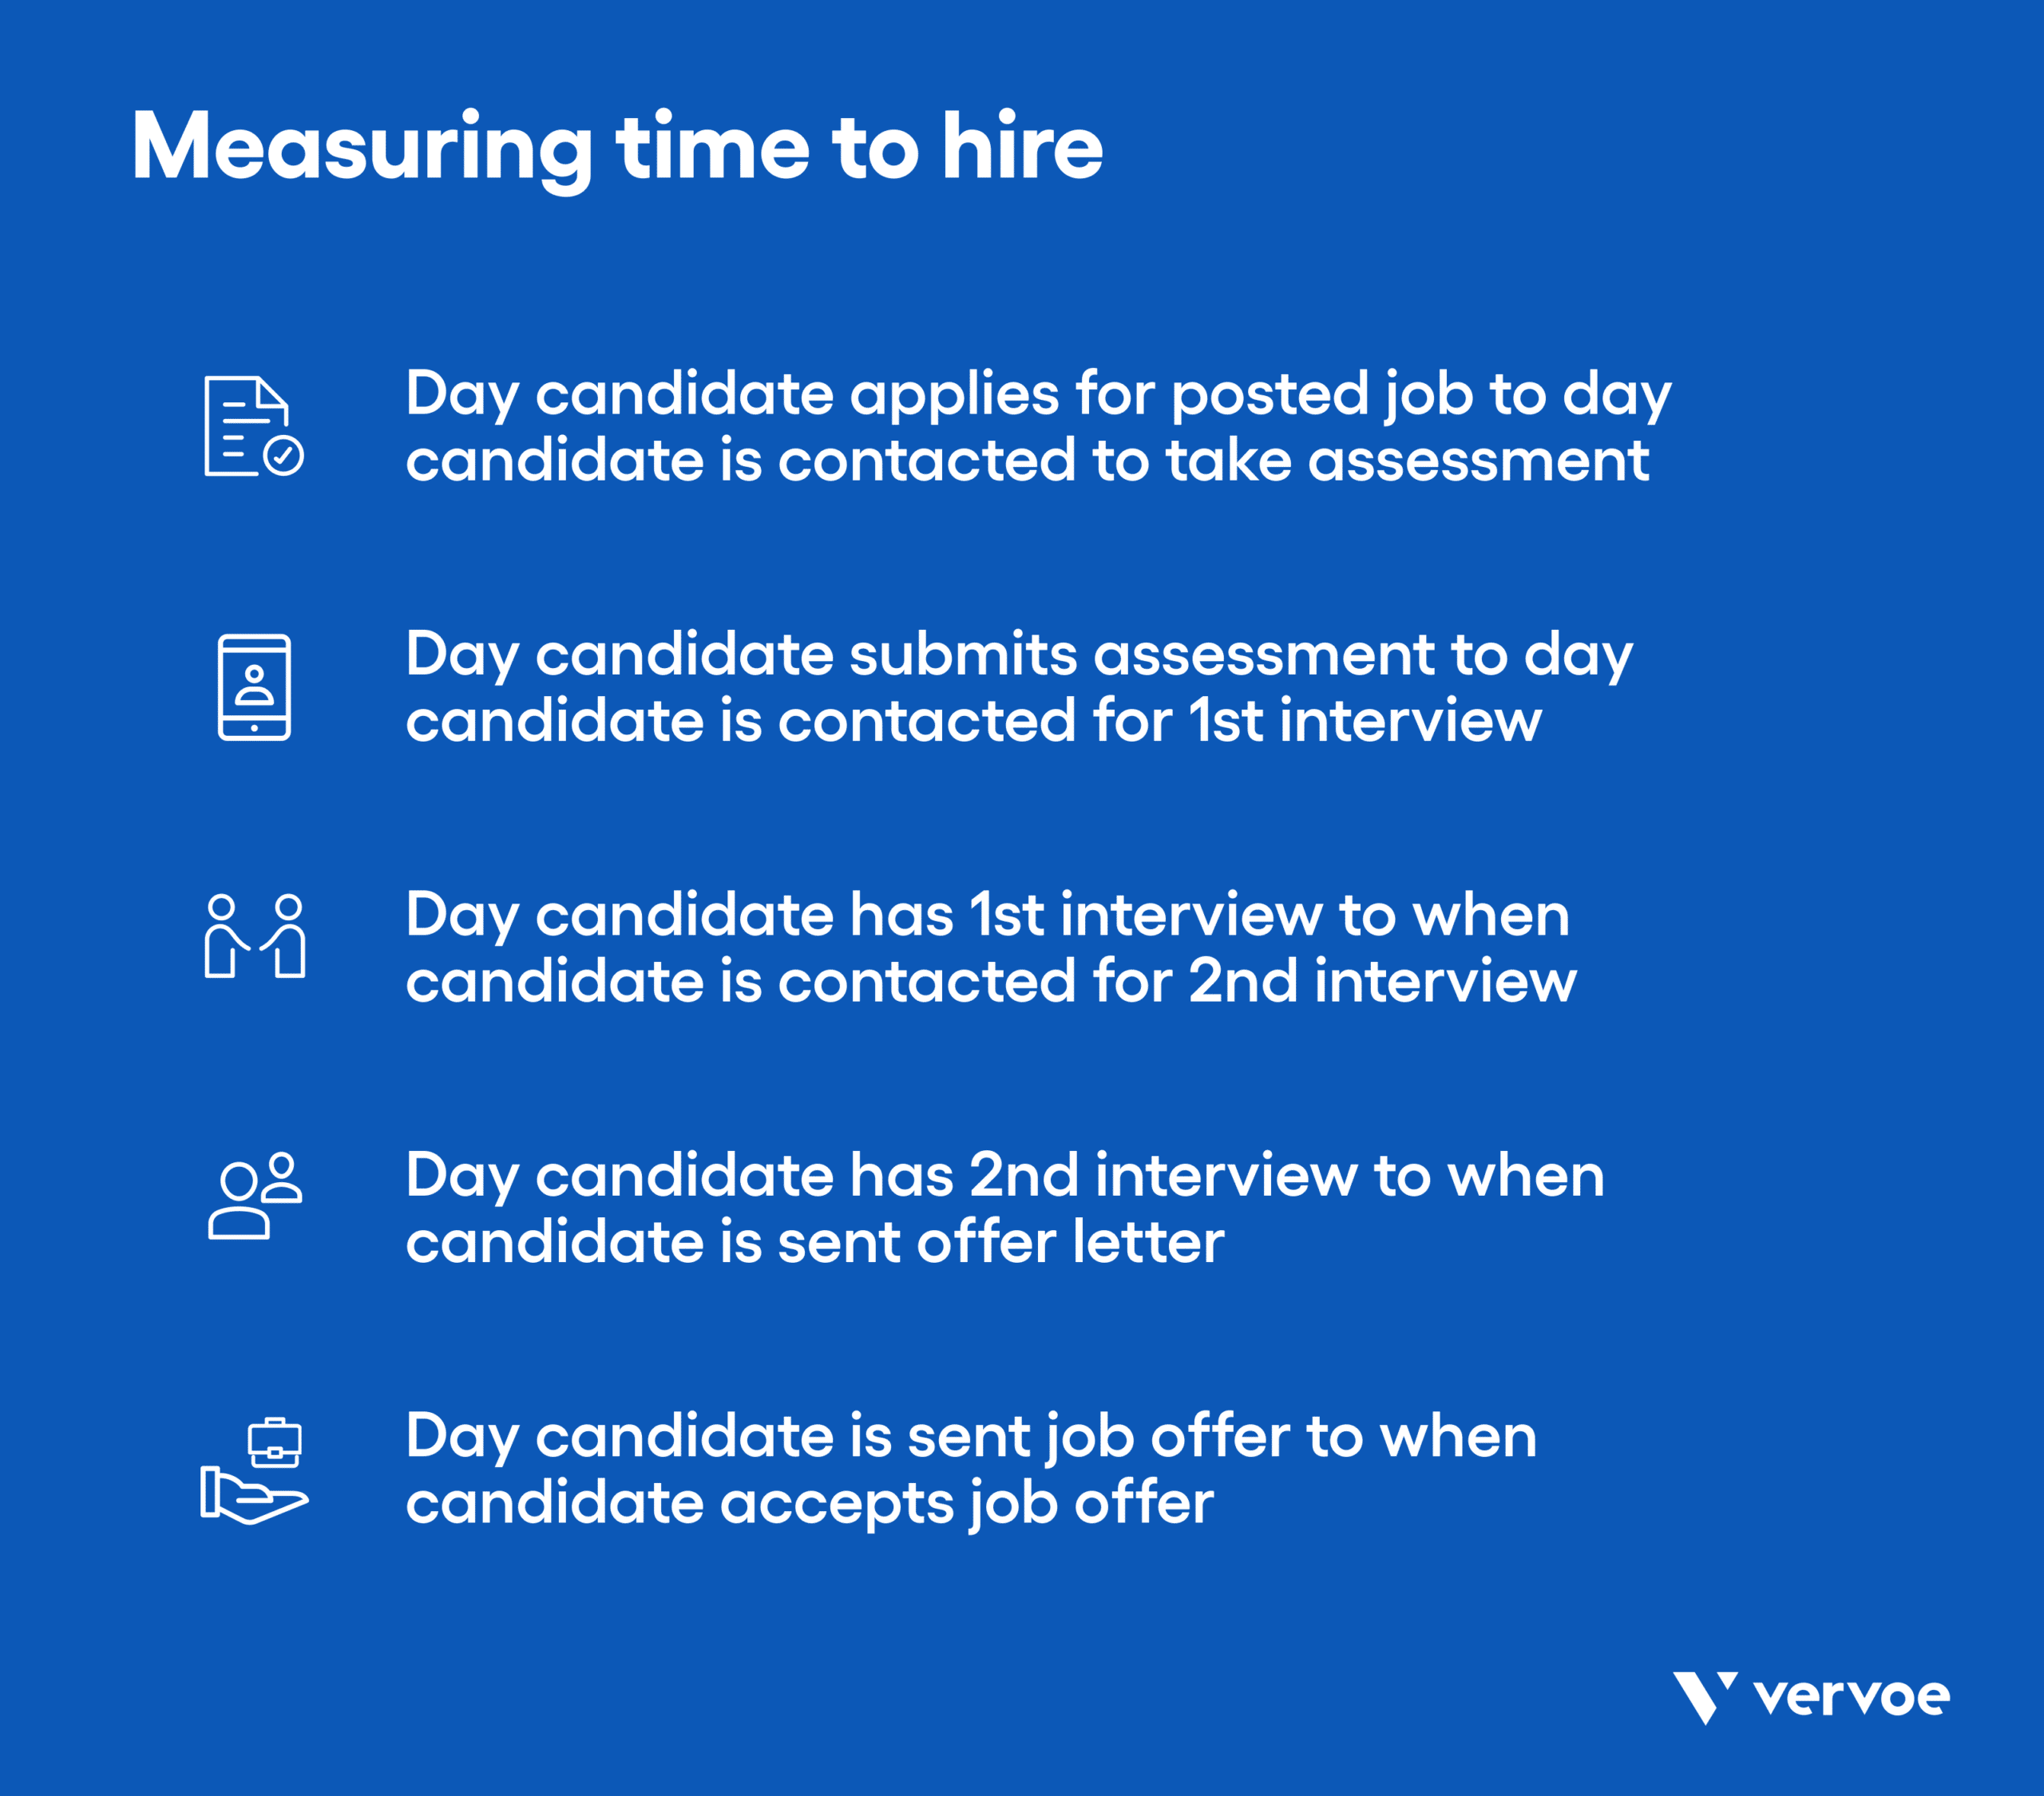 Infographic showing different ways to measure time to hire